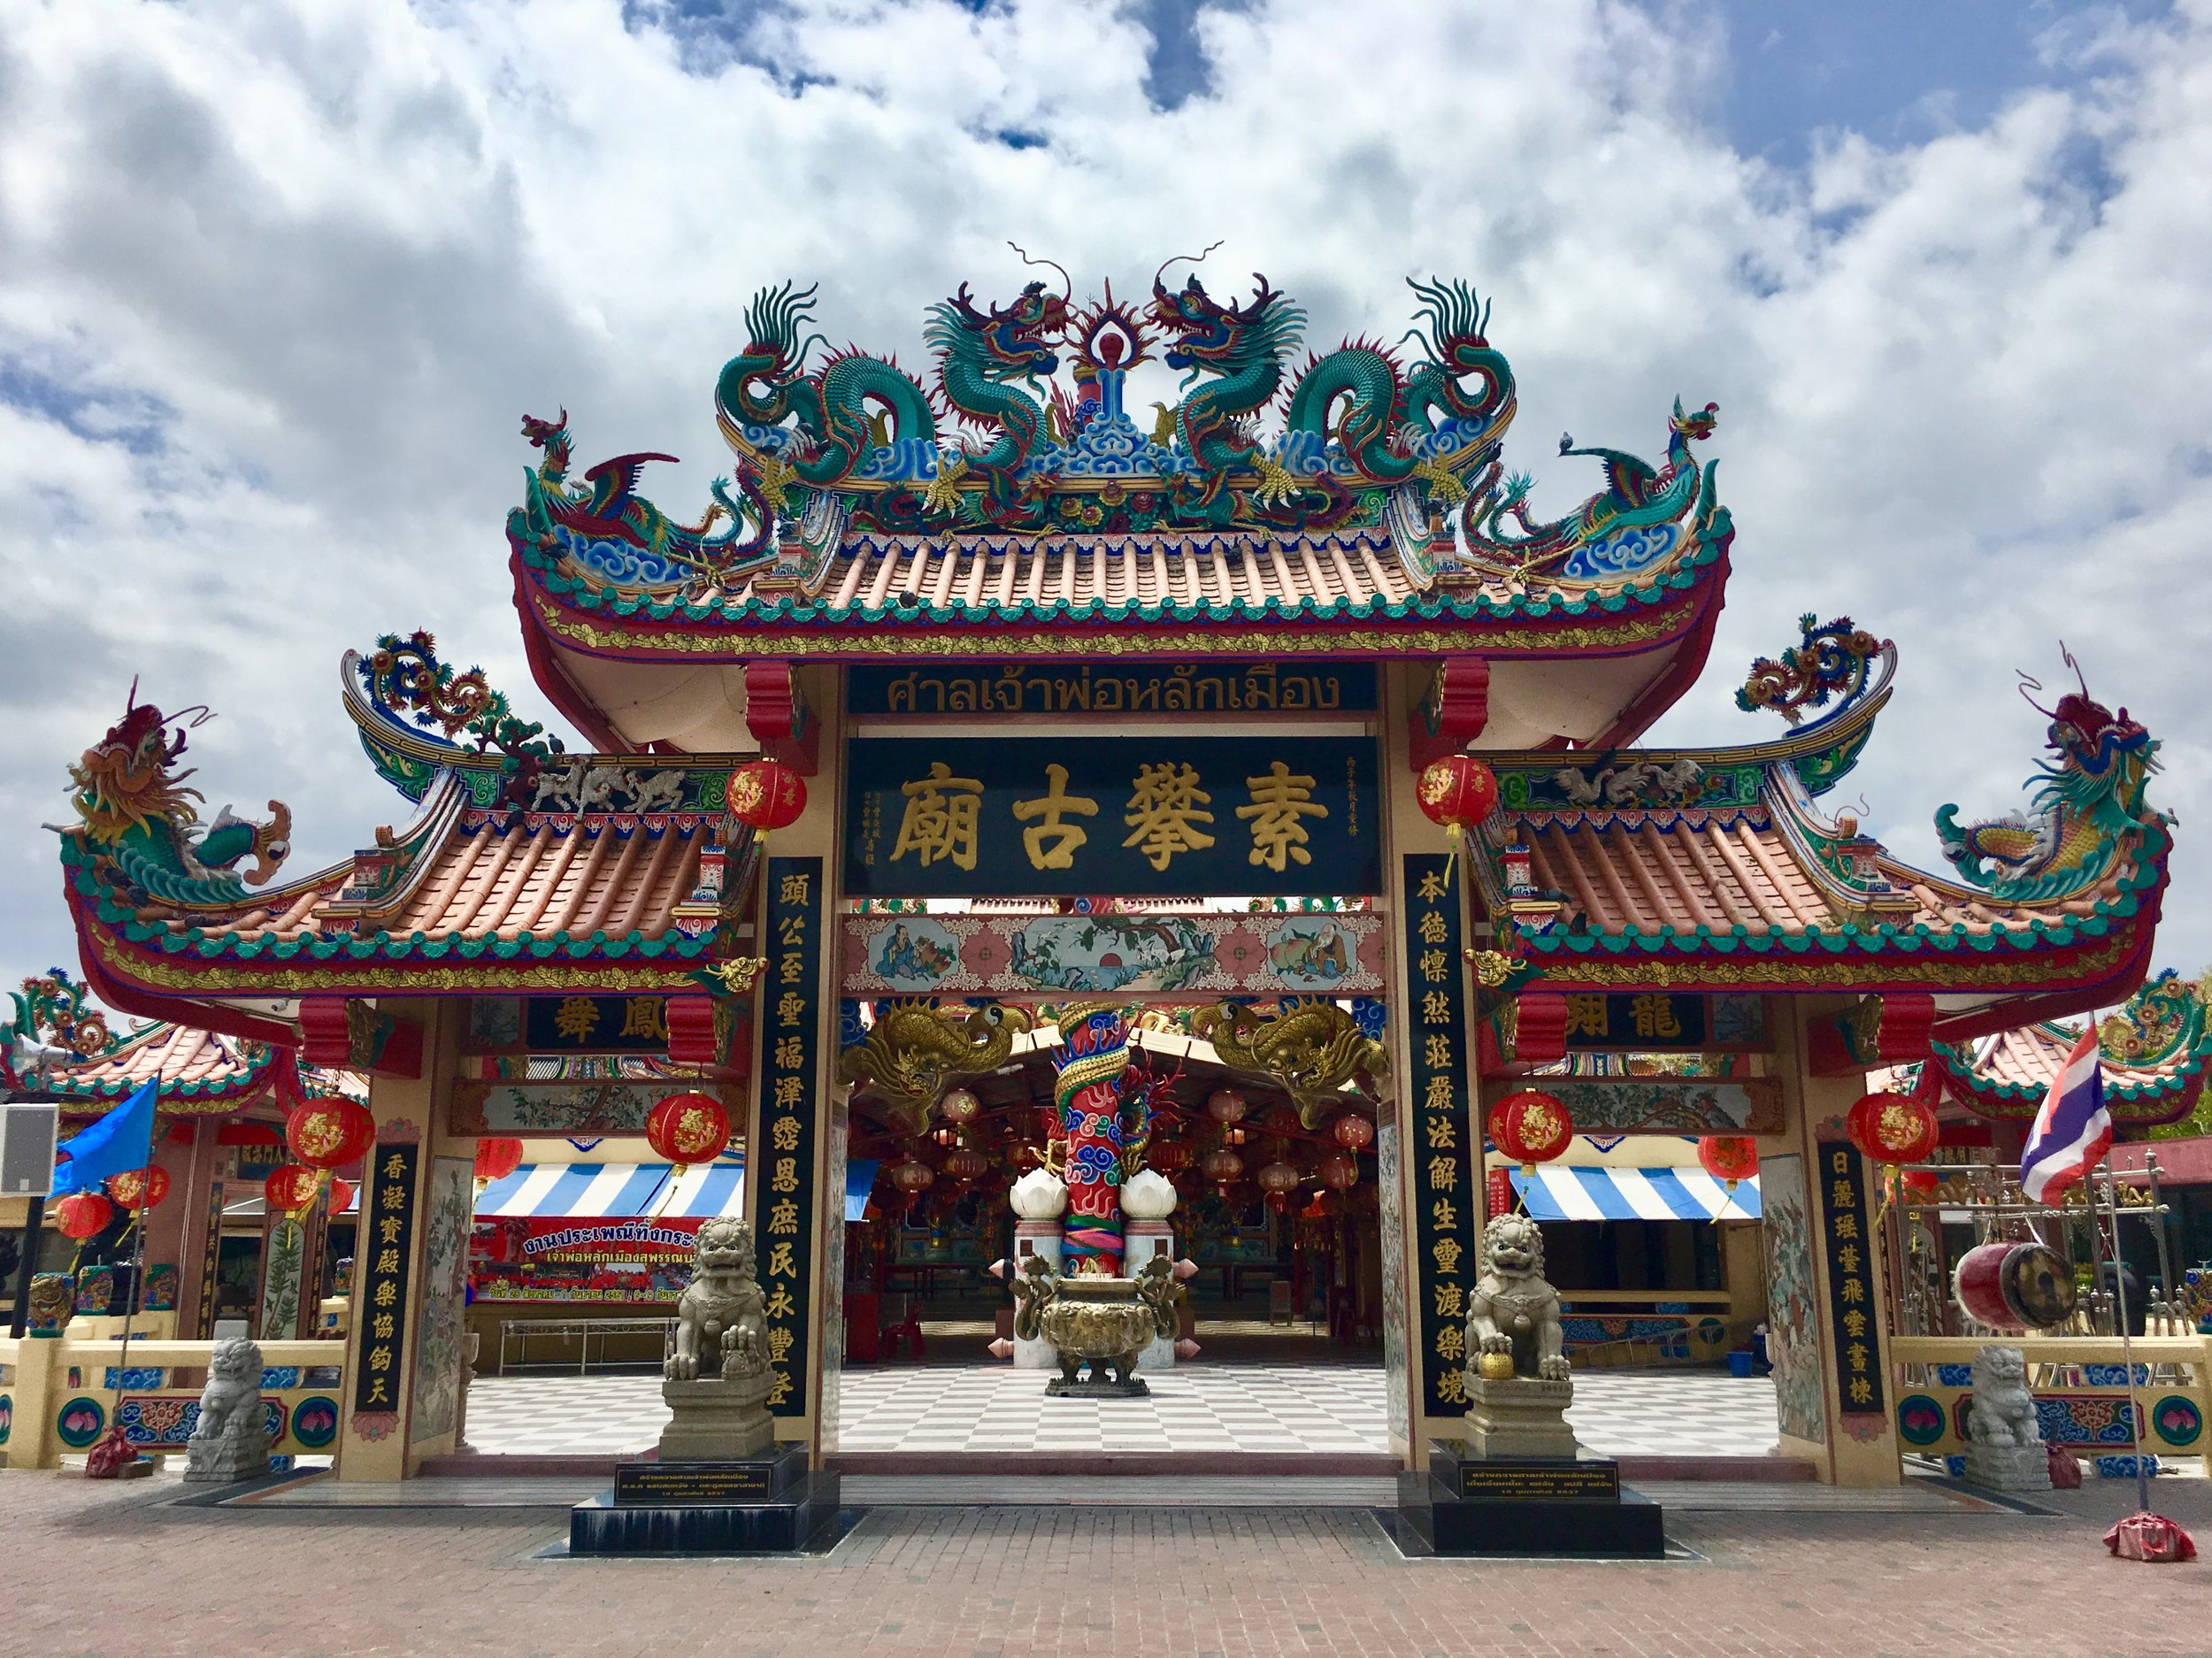 Pretty gate at the Celestial Dragon Village which celebrates Chinese culture in Thailand and China-Thailand cooperation